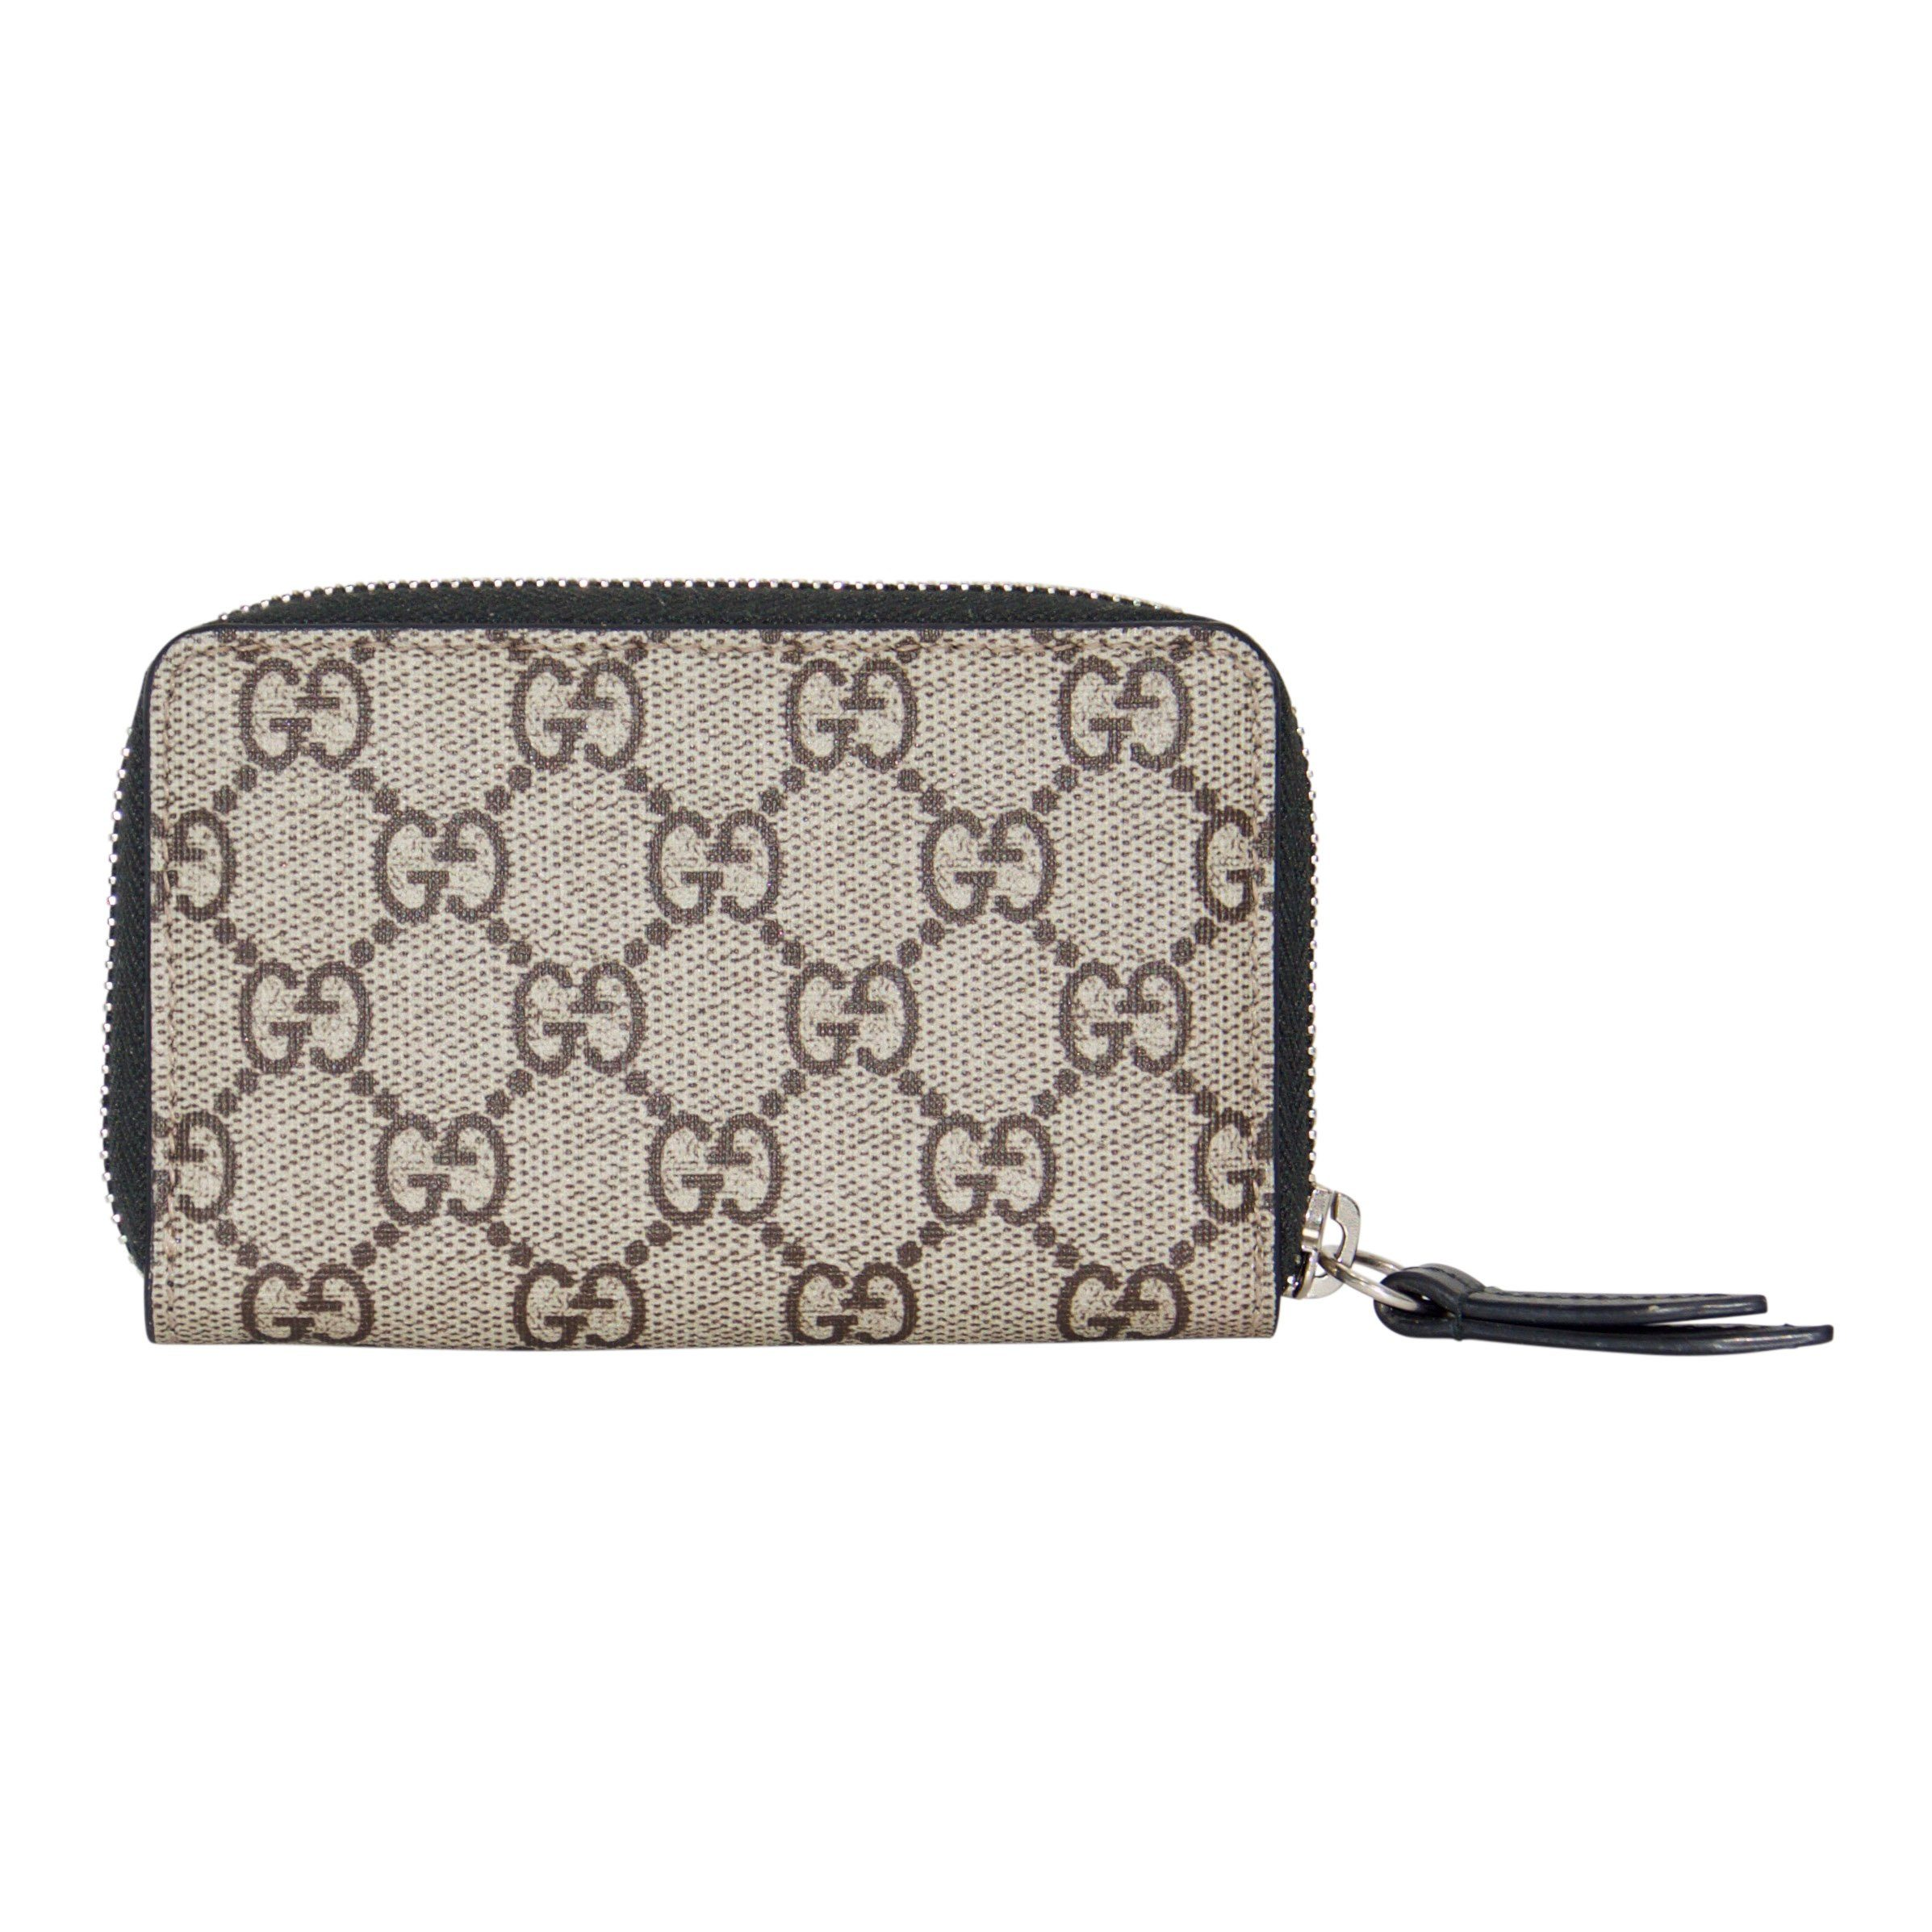 65f323b6cacaa7 ... Gucci Tiger Print GG Supreme Zip Card Case Wallets Gucci ...